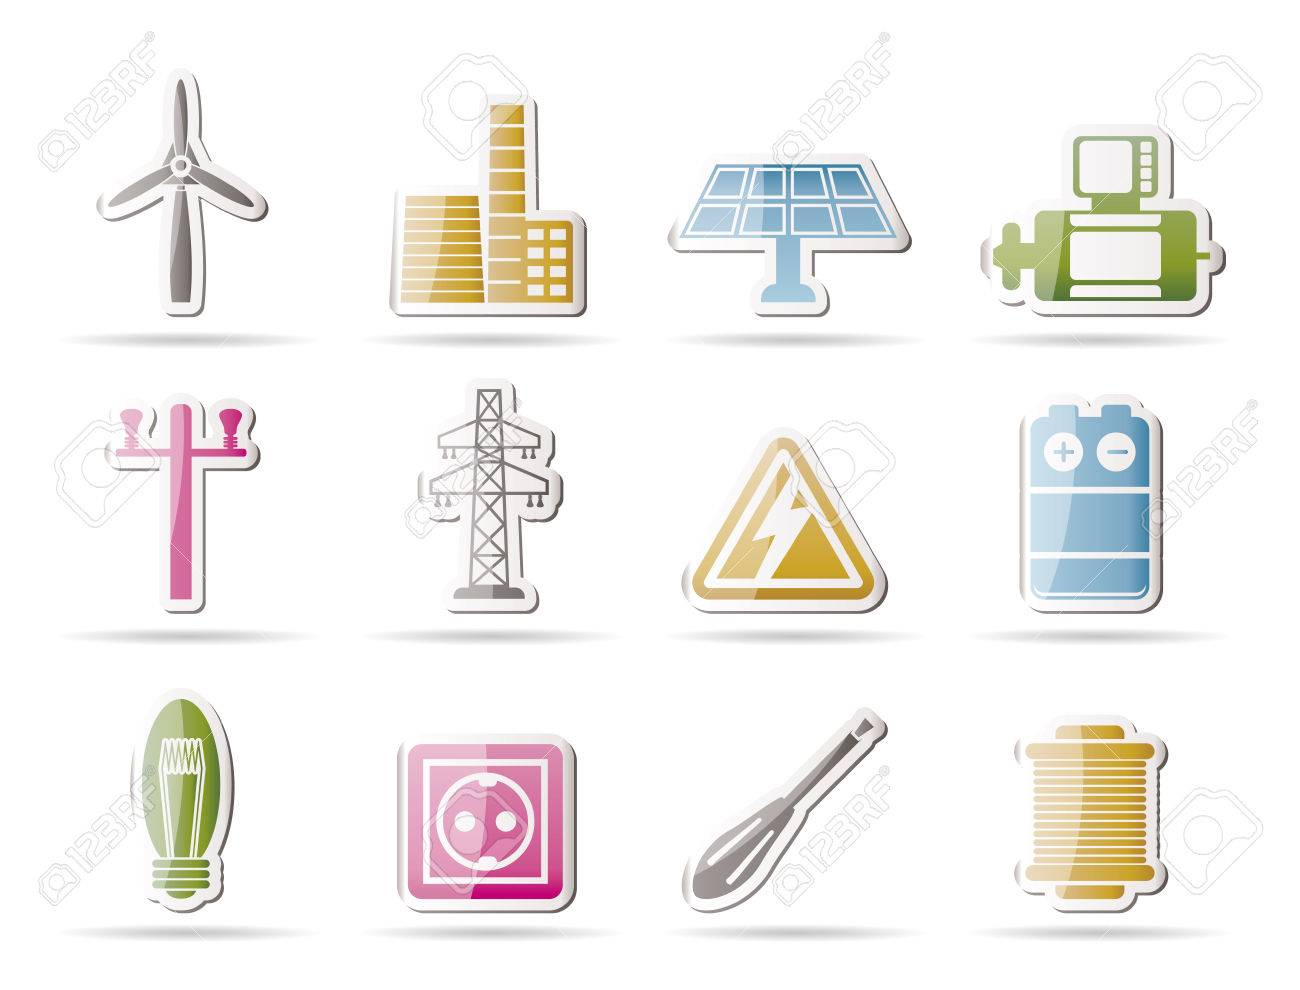 power generator icon. electricity and power icons vector icon set stock 8033139 generator